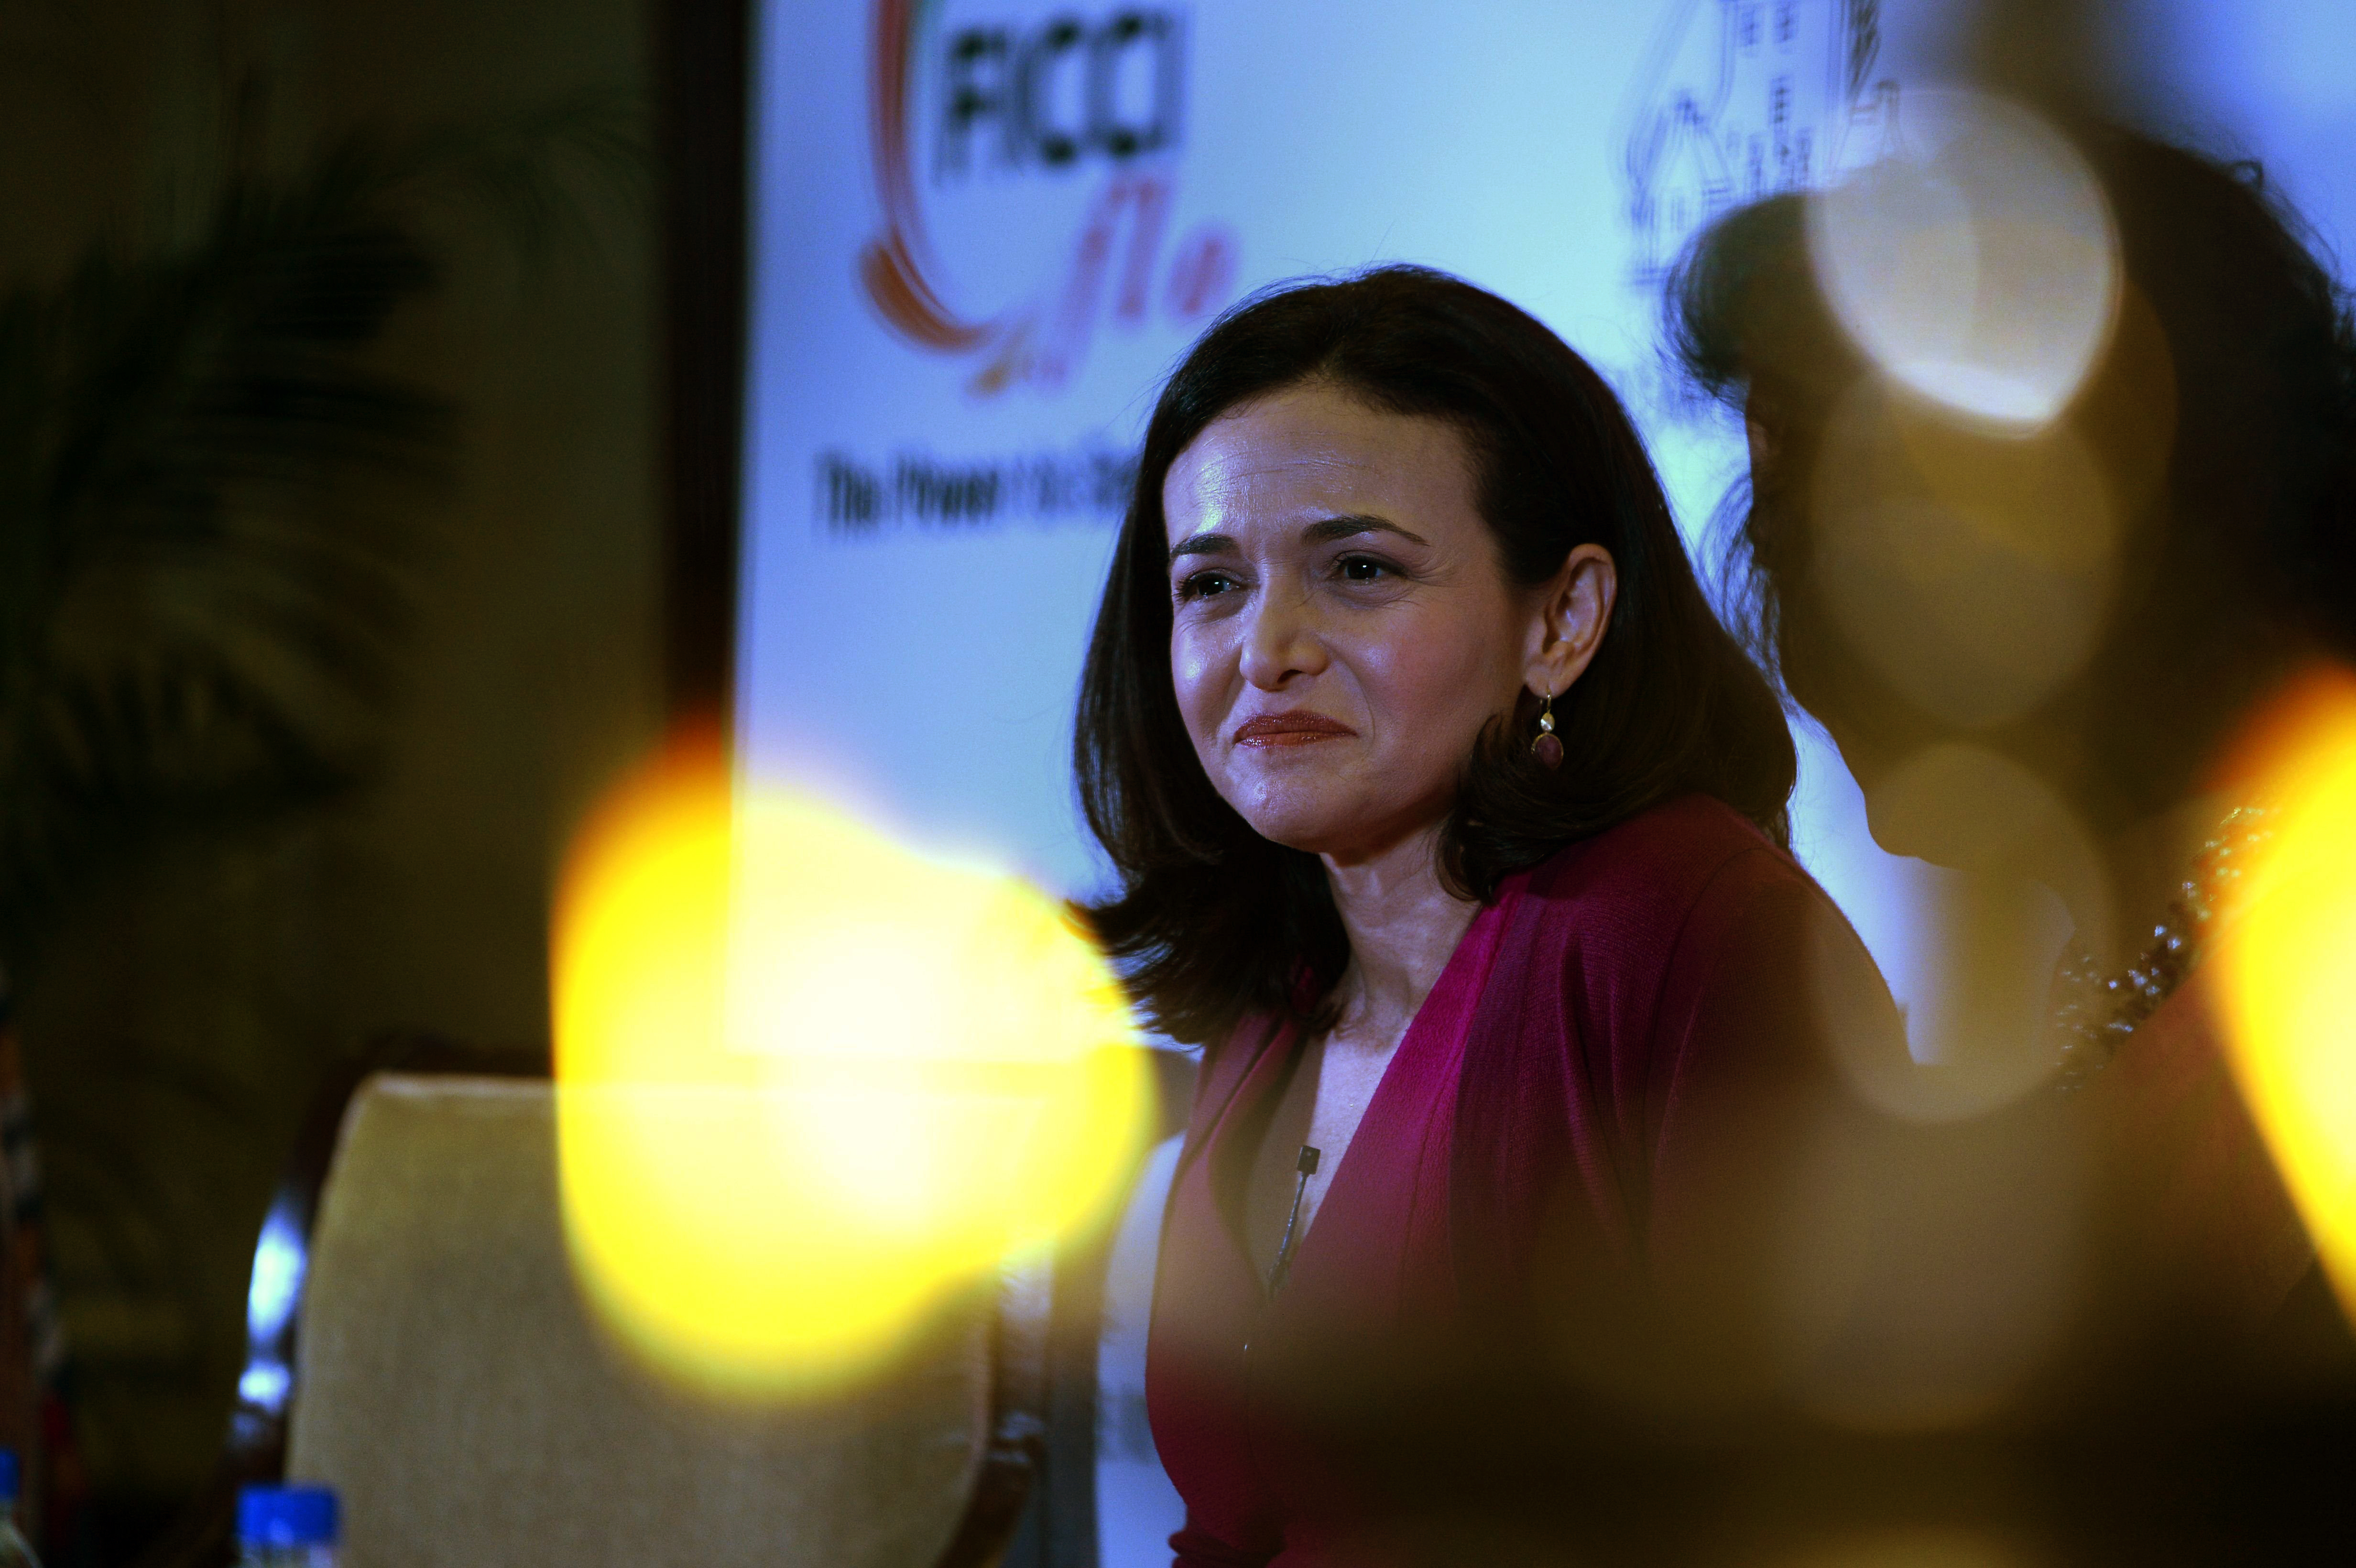 Facebook chief operating officer (COO), Sheryl Sandberg addresses an interactive session organized by the women's wing of the Federation of Indian Chambers of Commerce and Industry (FICCI) in New Delhi on July 2, 2014.